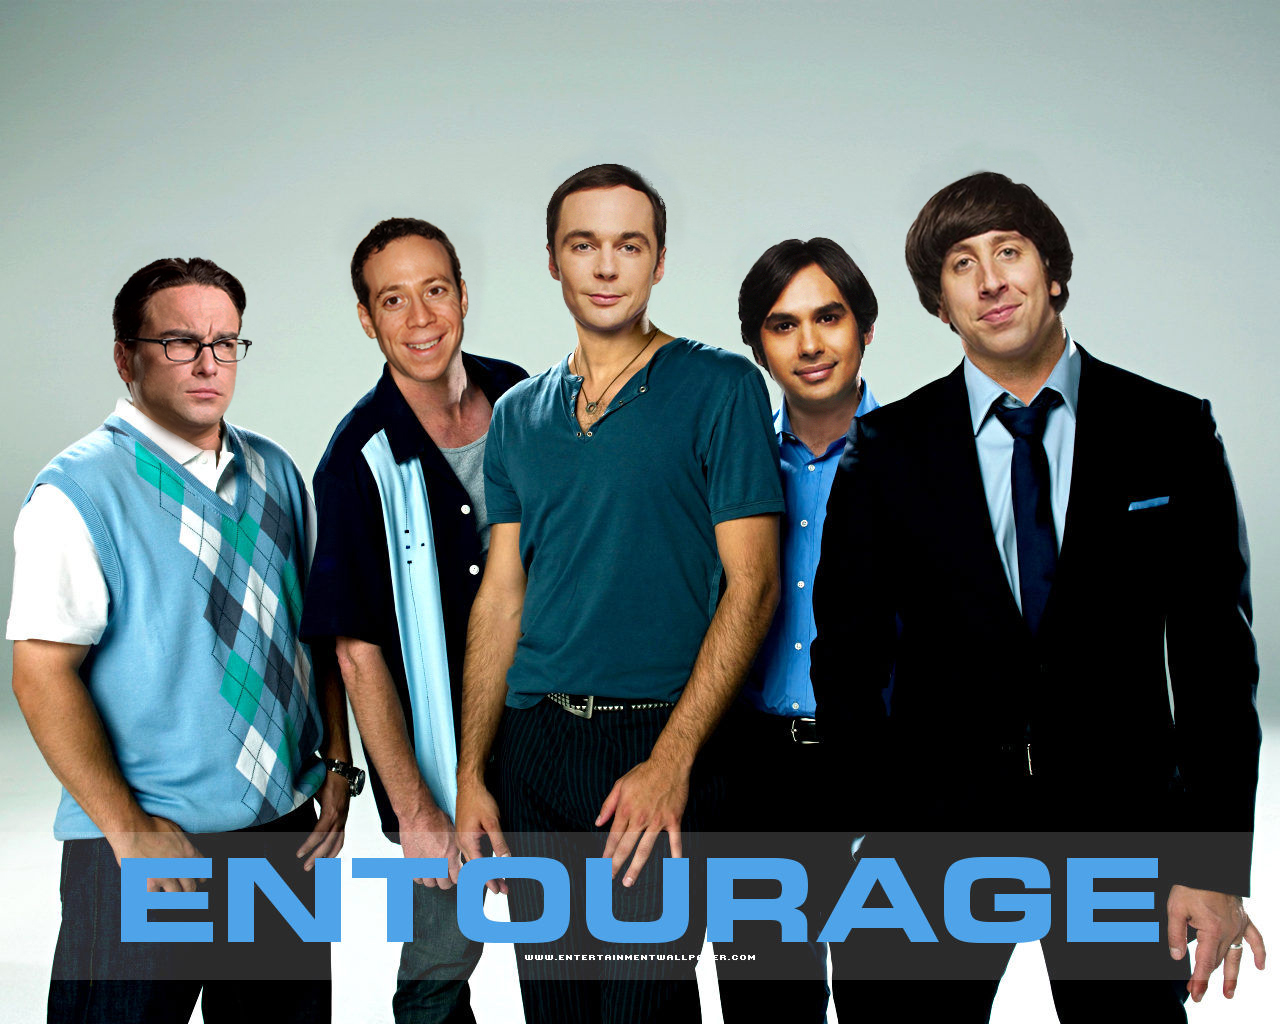 Image result for big bang theory photoshop